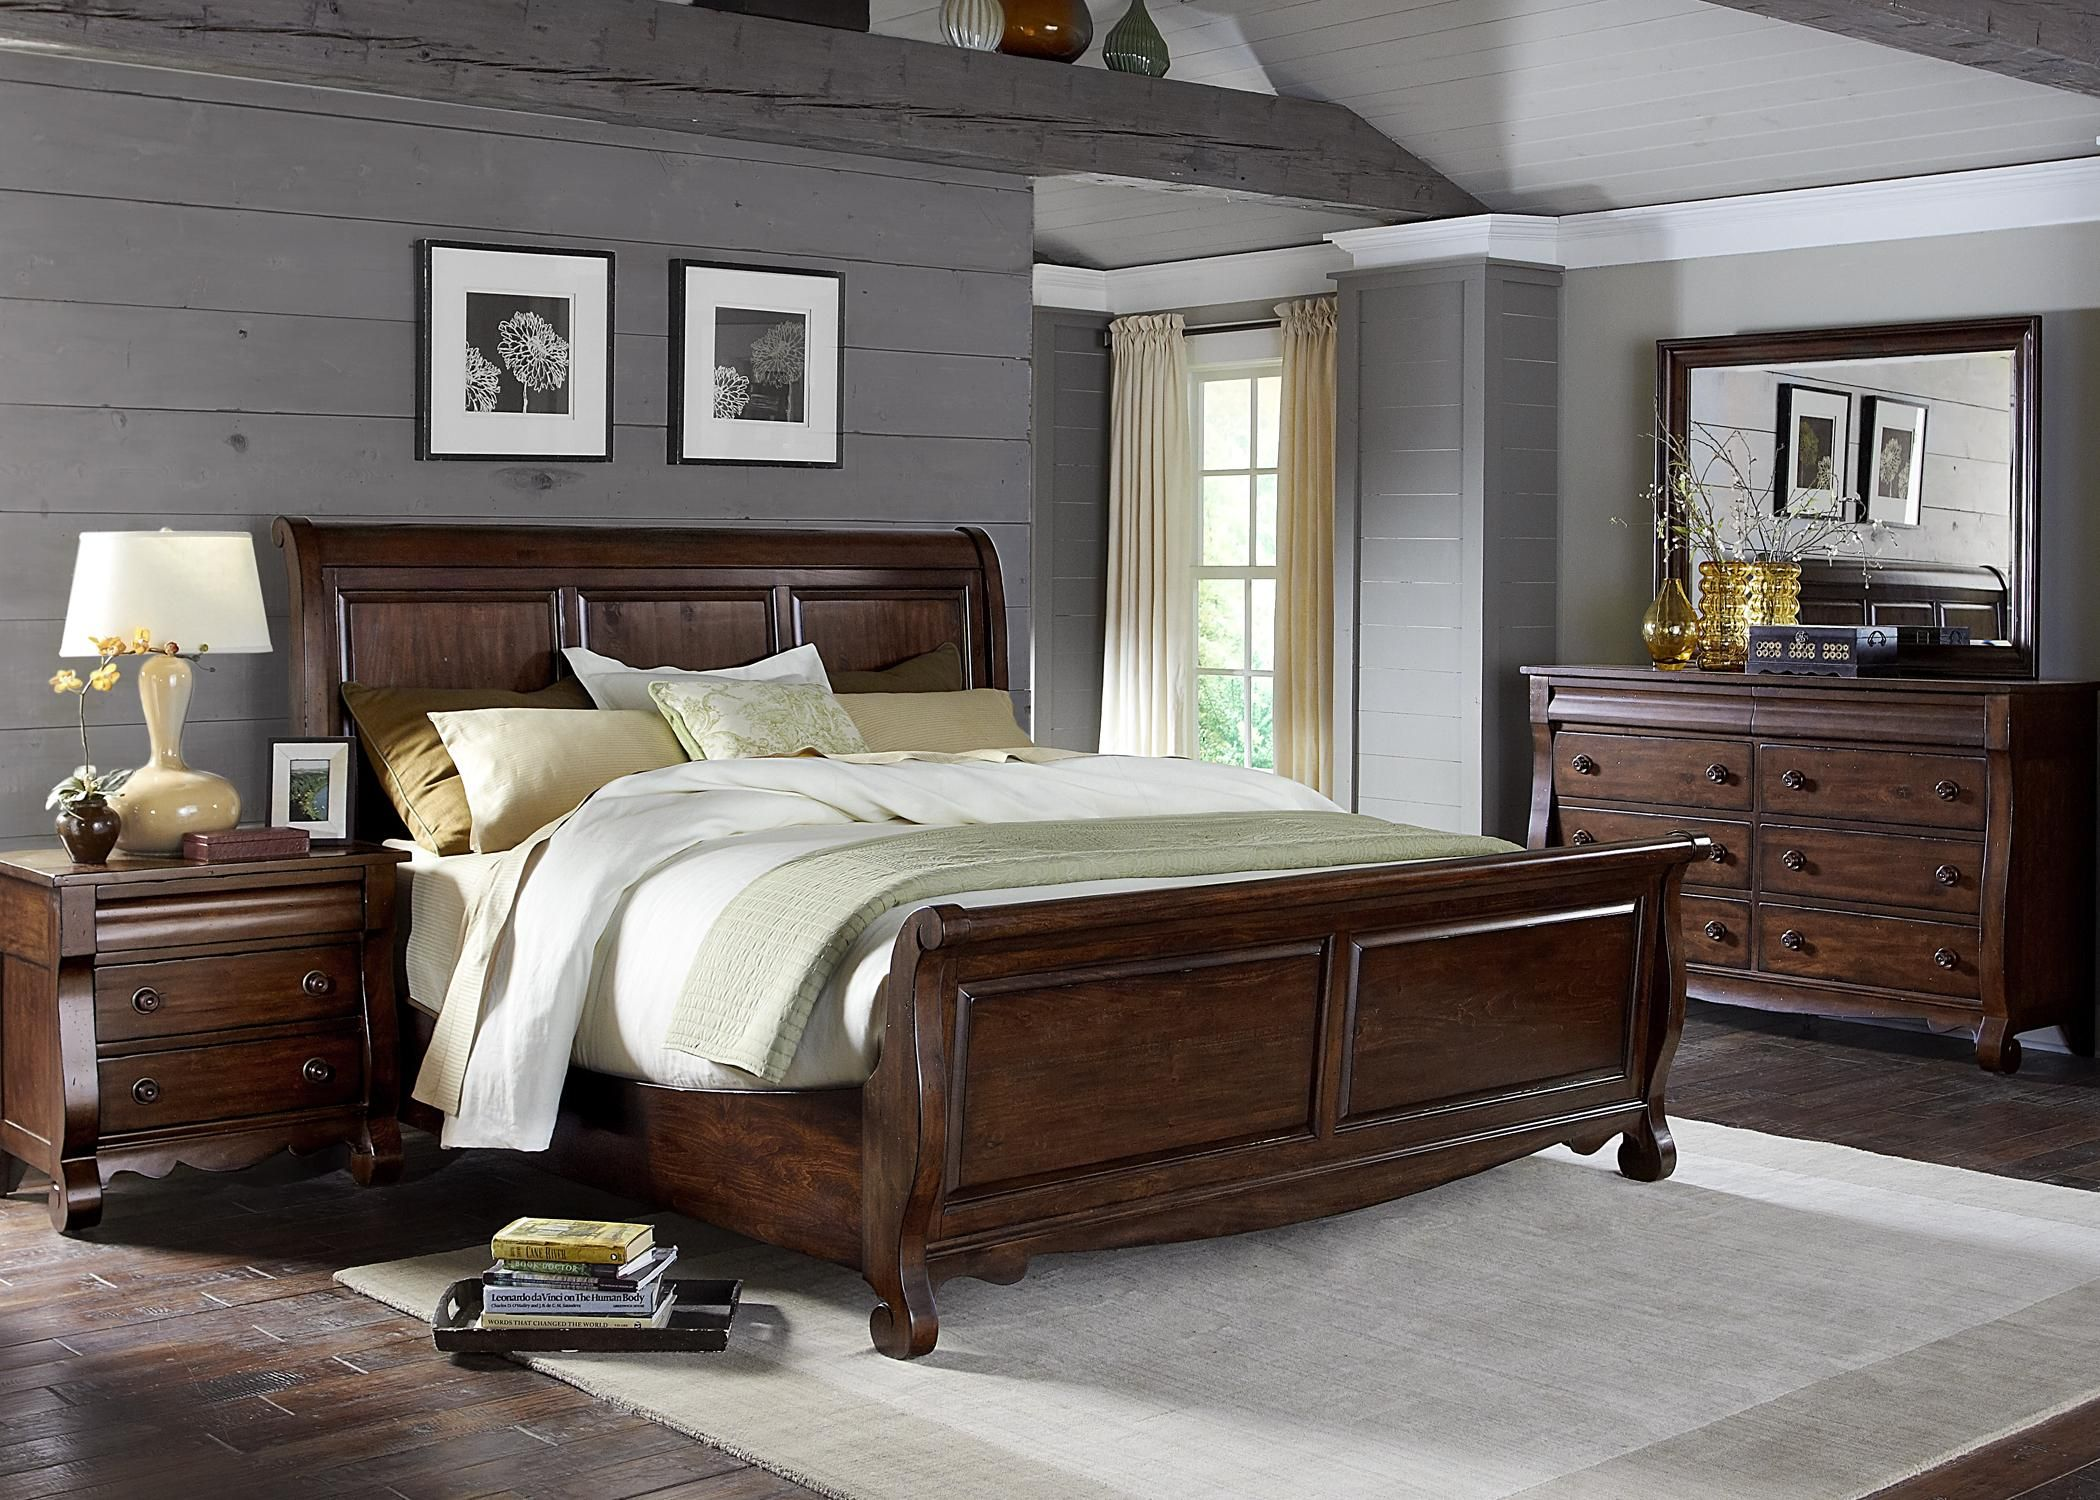 Transitional In Style This Sleigh Bed Can Fit In With Classic Or Modern Decors Traditional Inspired Fr Broyhill Furniture Brown Furniture Bedroom Bedroom Sets